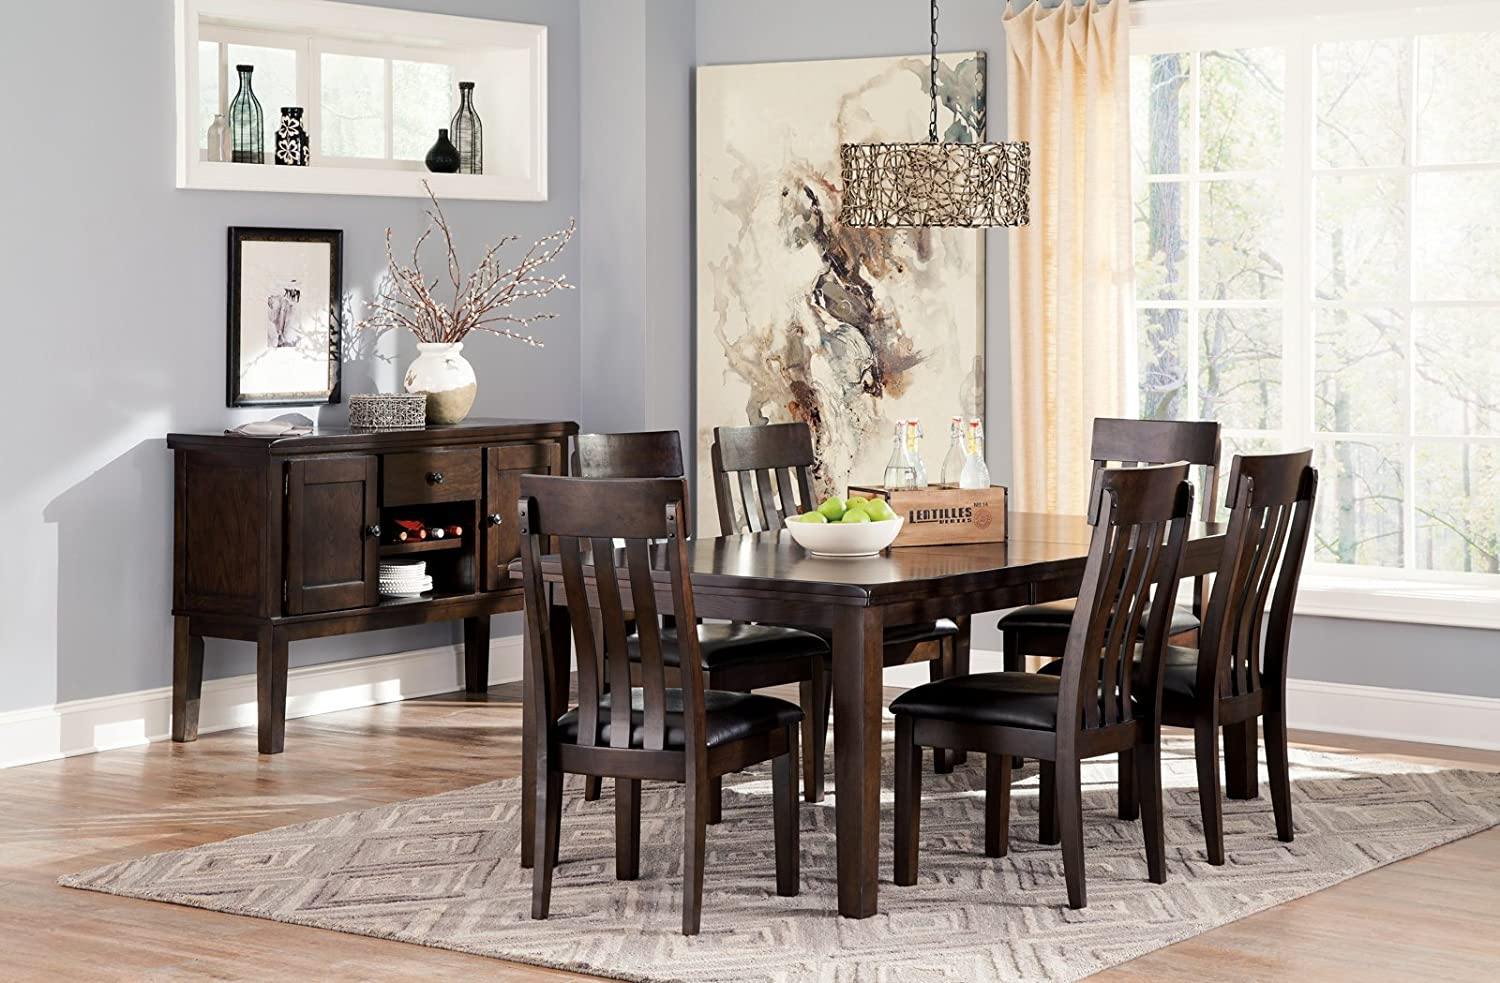 Amazon.com - Signature Design by Ashley D596-35 Dining Room Table ...